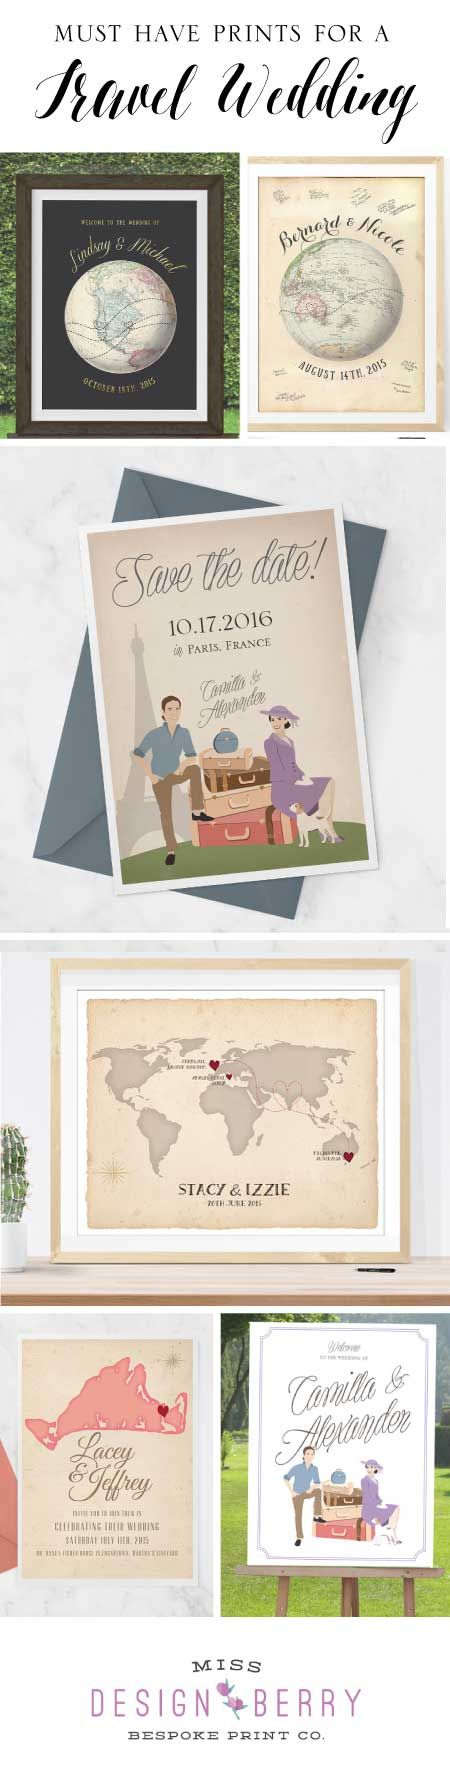 The best travel wedding signs, invites, save the dates, and more!